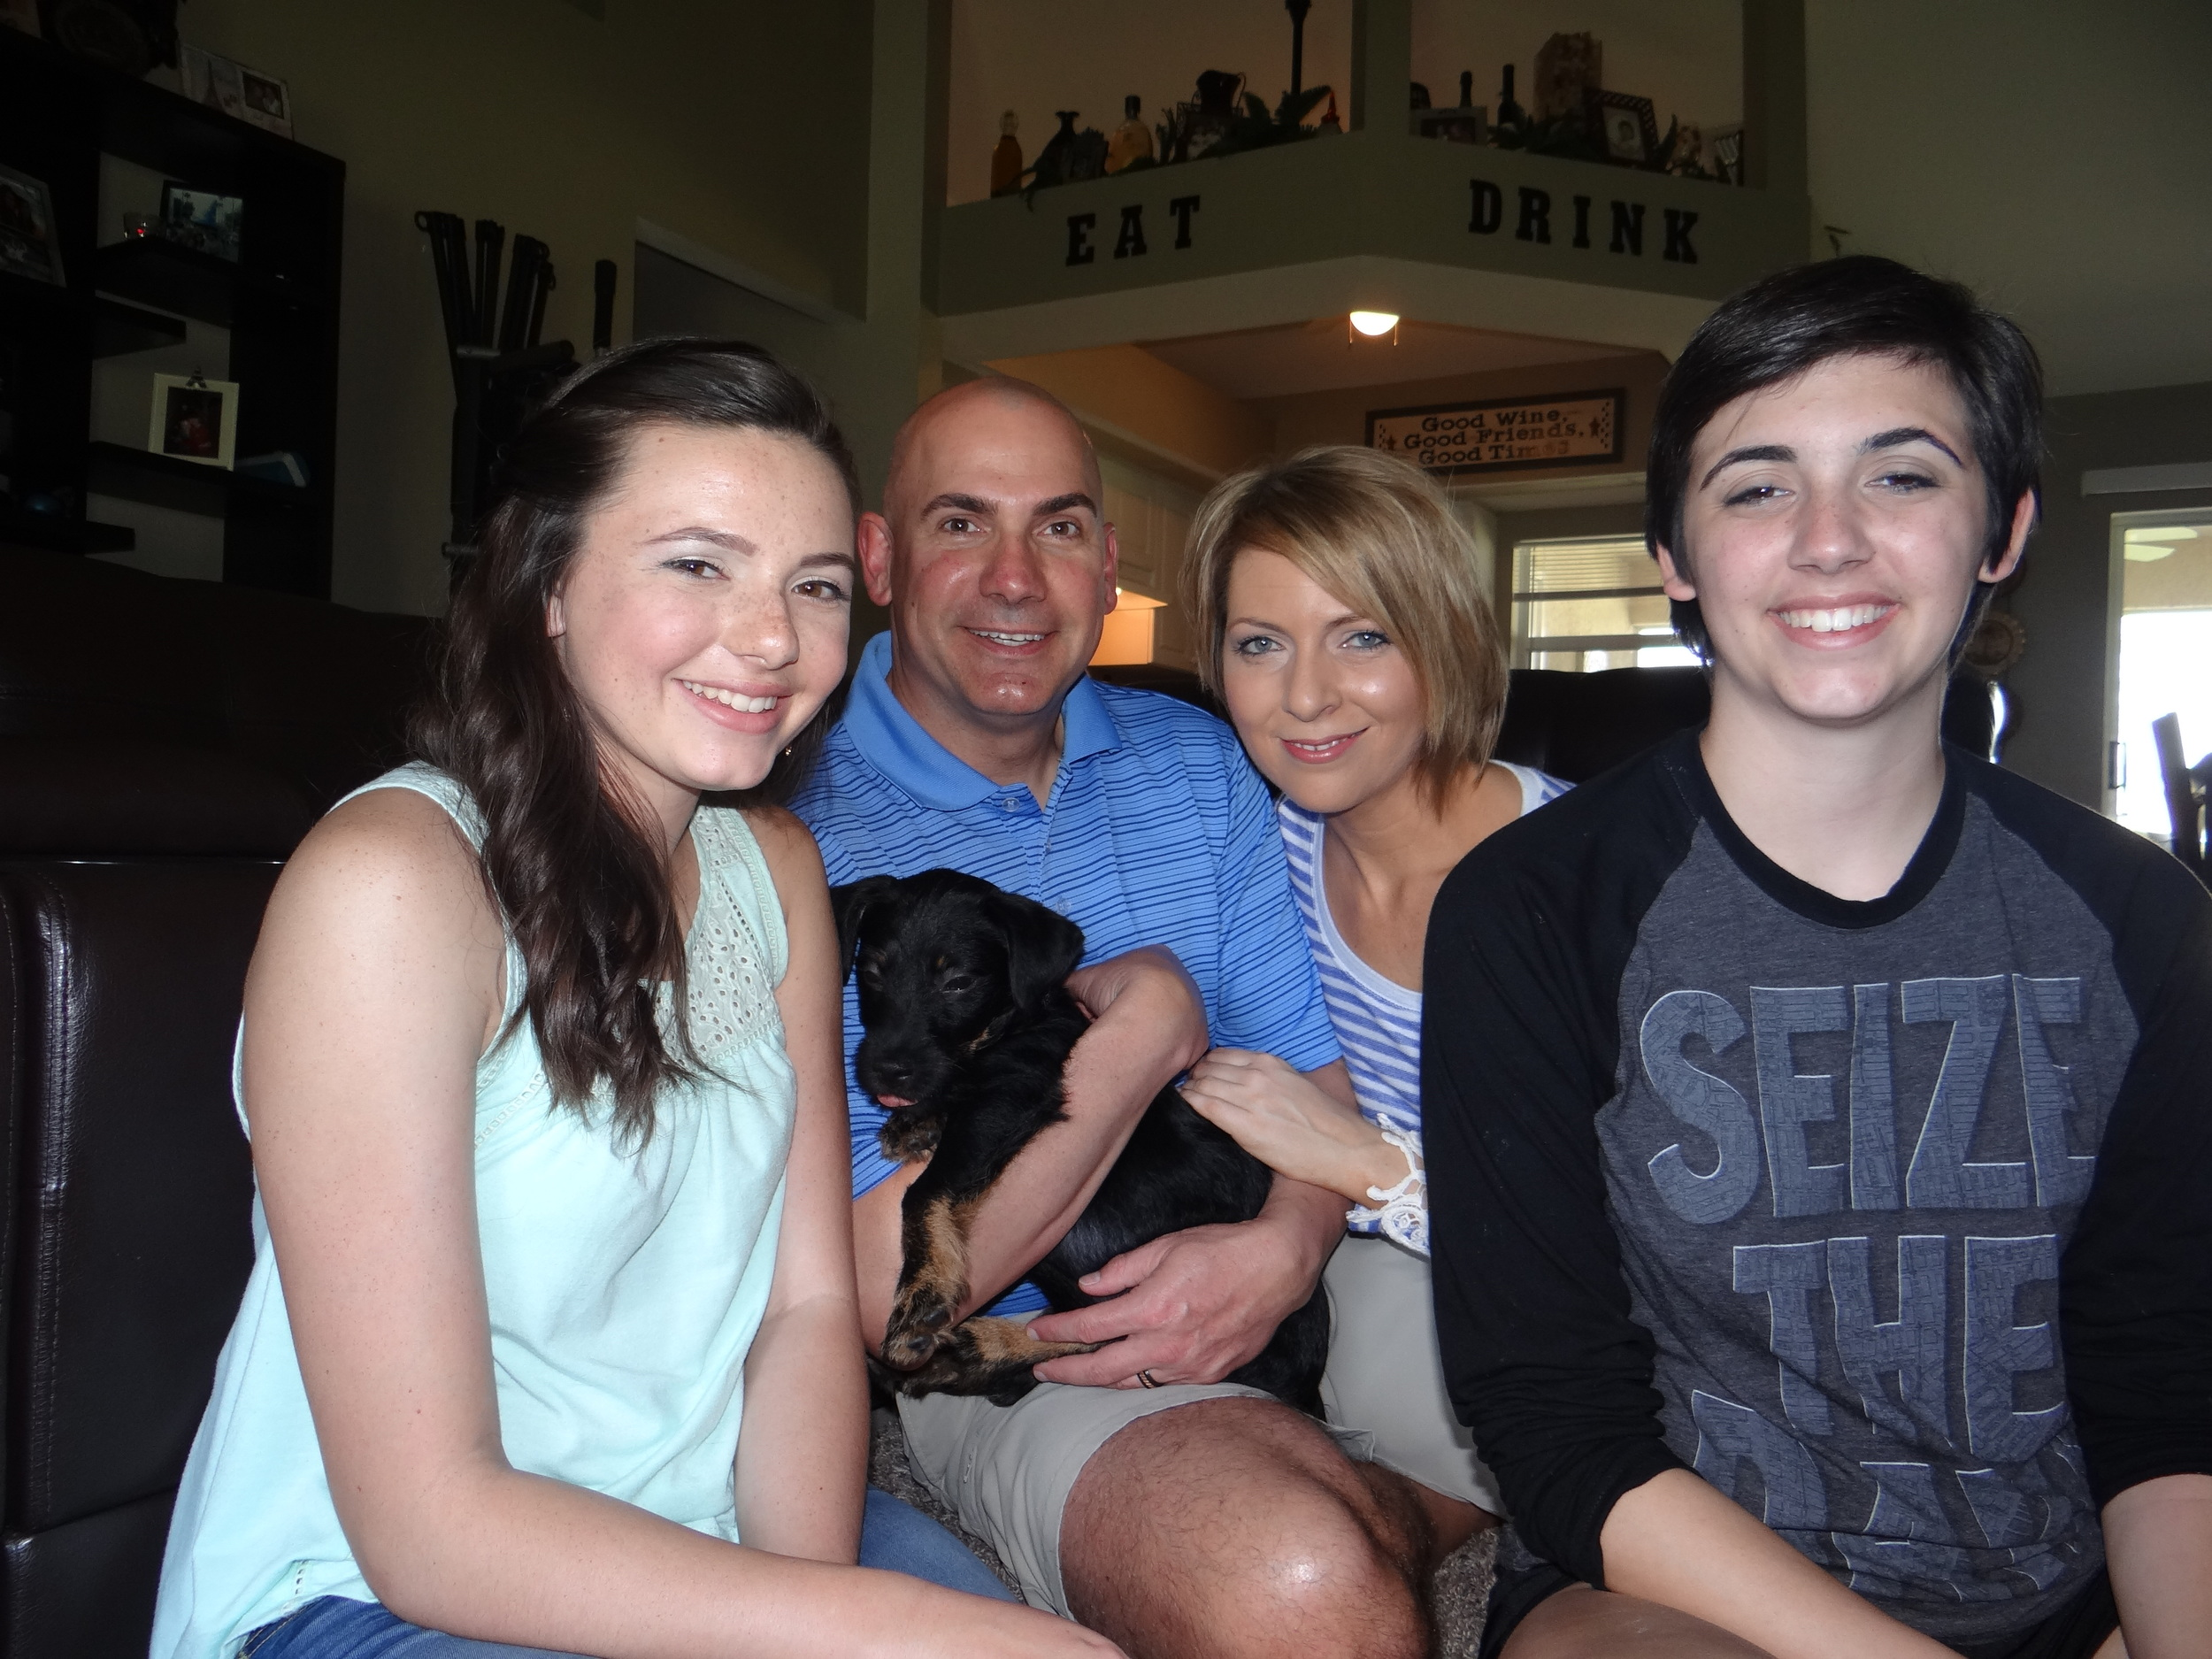 TEAM CASTNER in April 2015...right after we adopted, our new dog, Auggie!